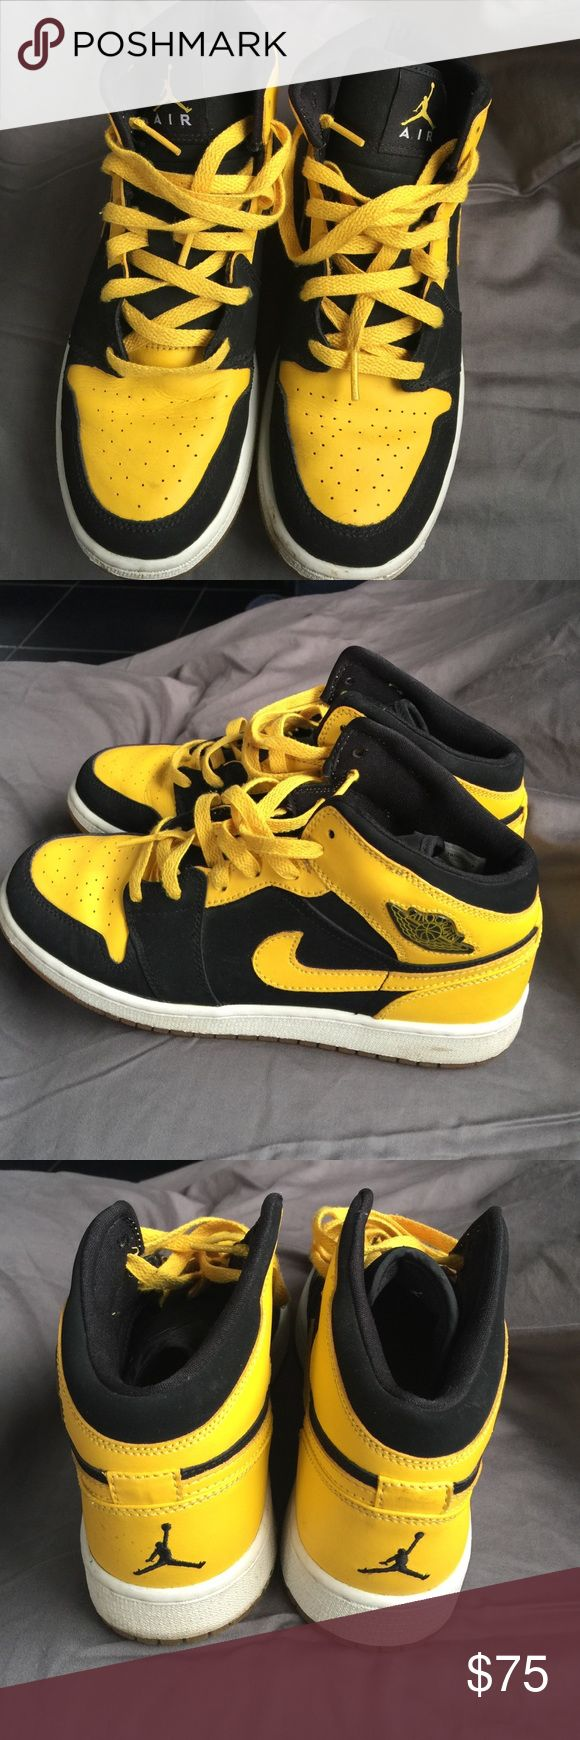 Retro Air Jordan 1 Used Black and Yellow Air Jordan Retro 1 Jordan Shoes Sneakers